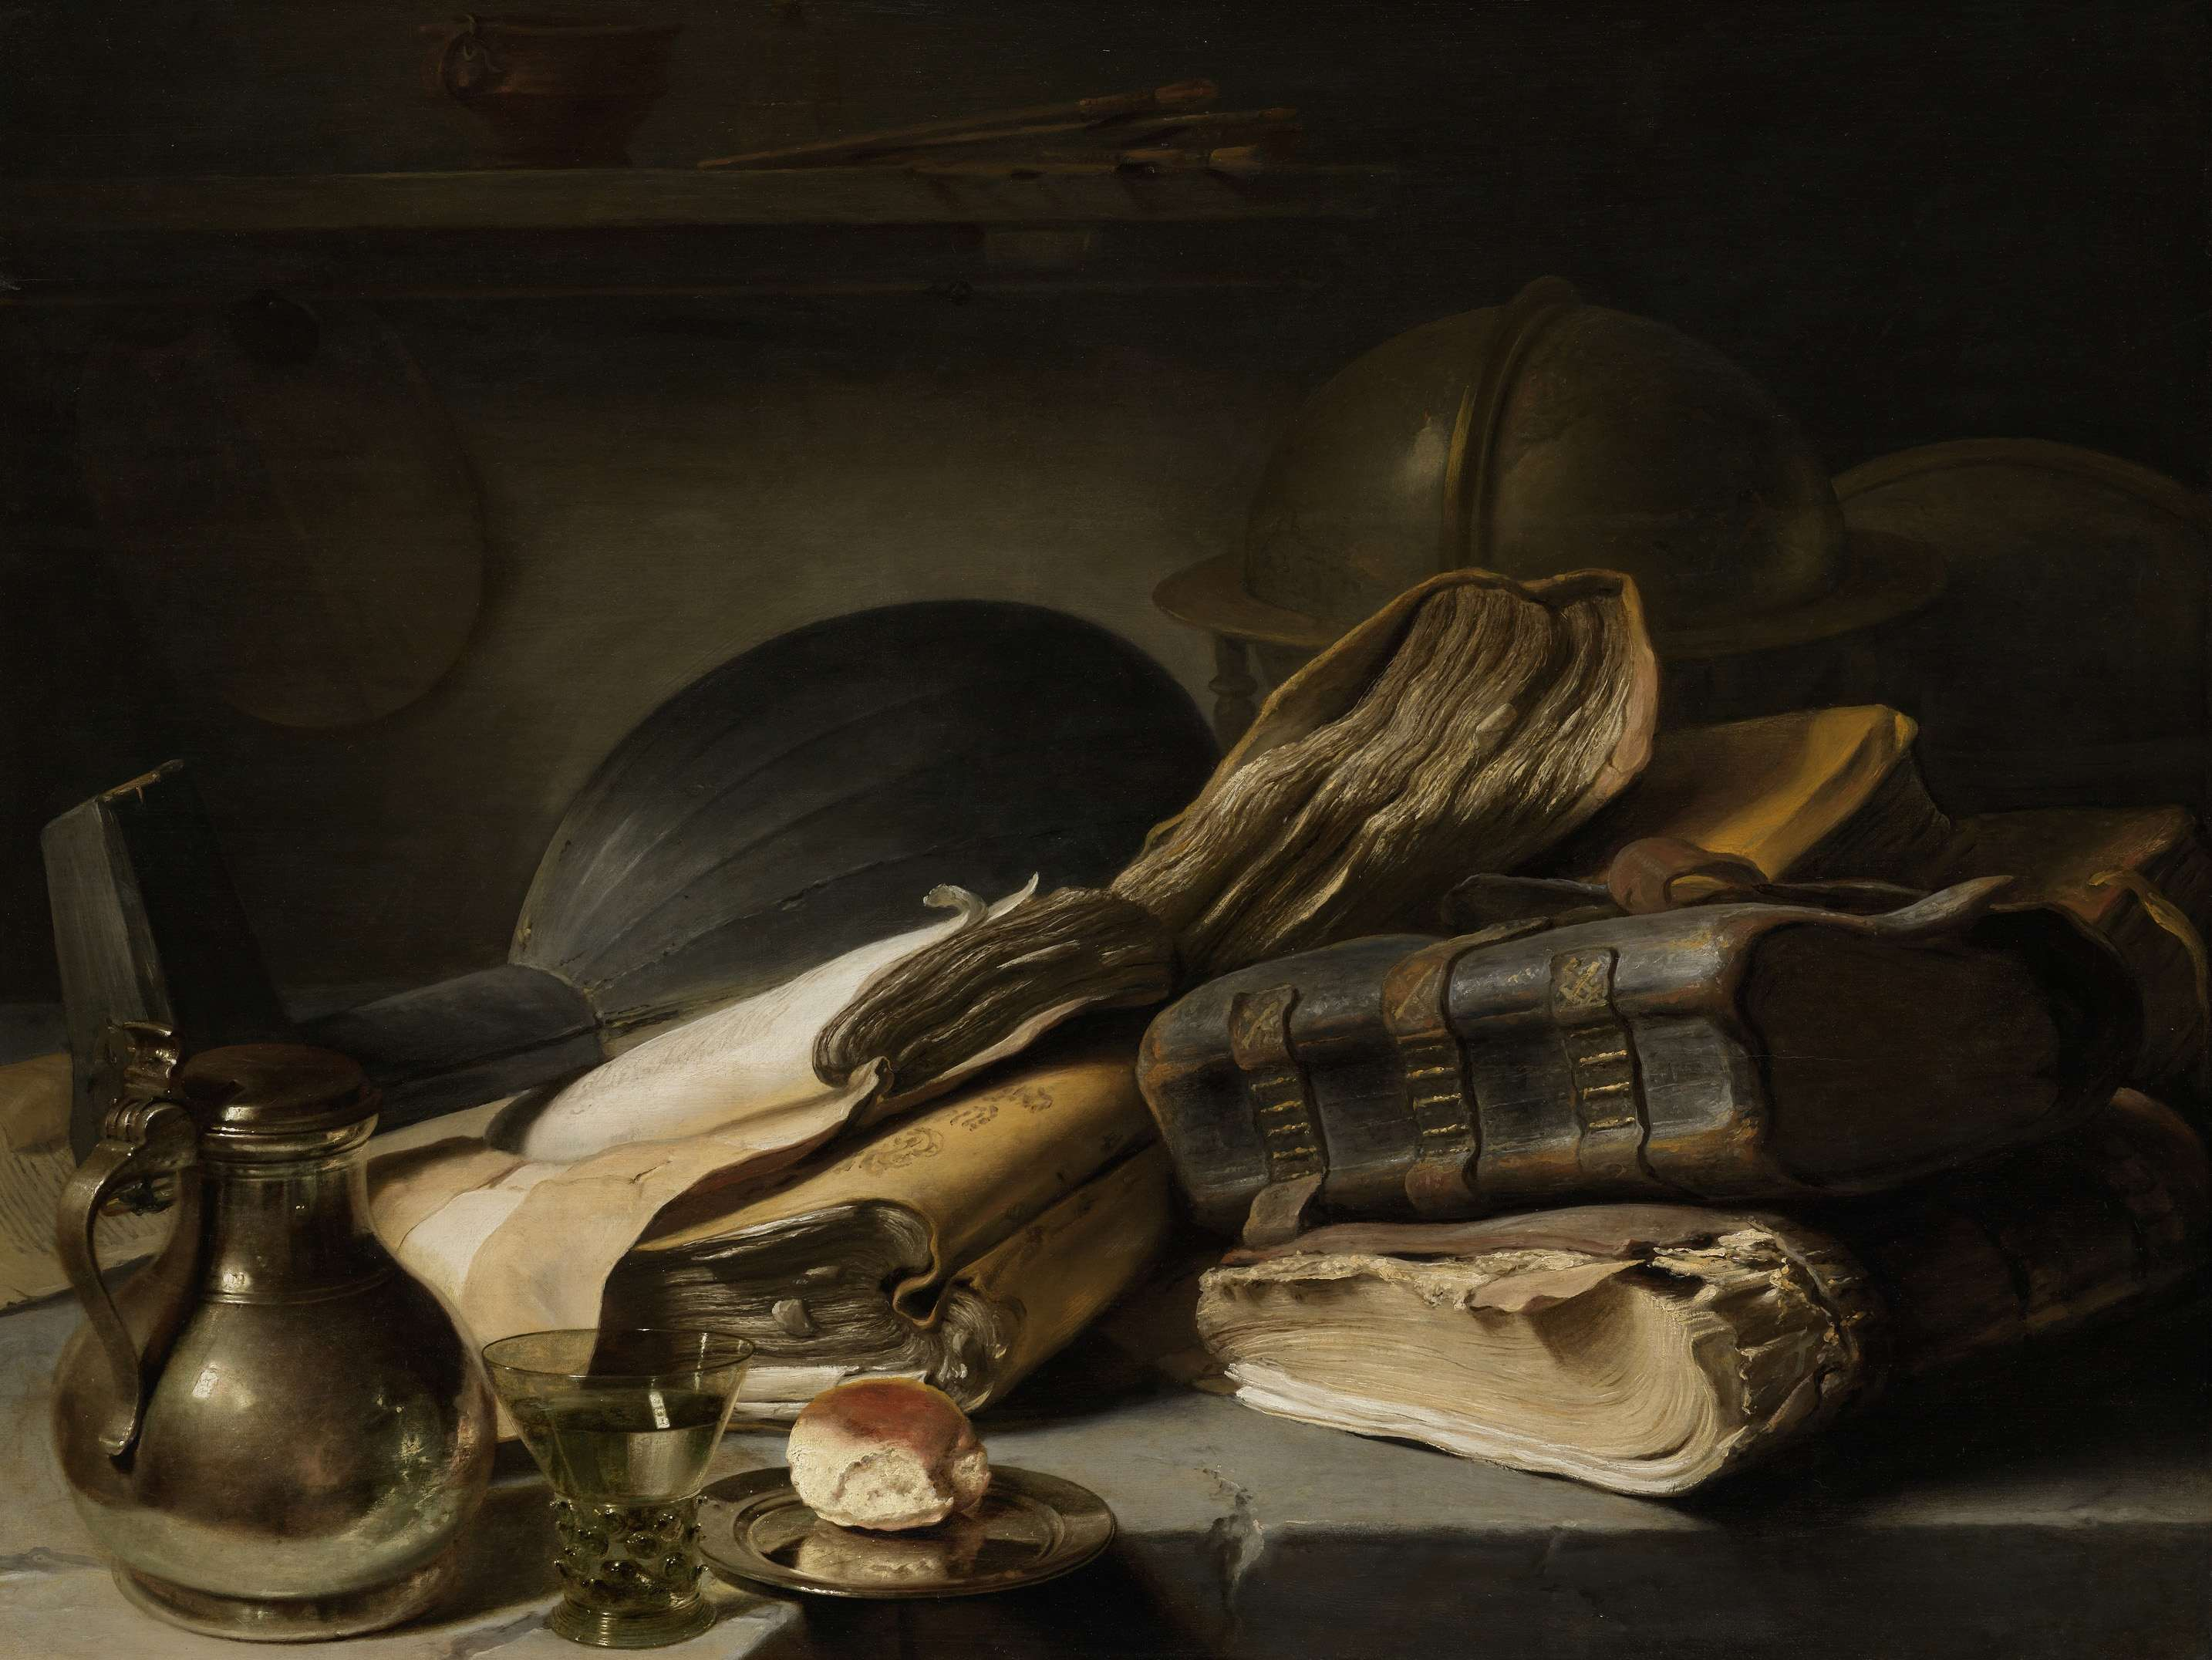 Jan Lievens, Still life with books, c. 1627-1628. Oil on panel. Rijksmuseum, Amsterdam.